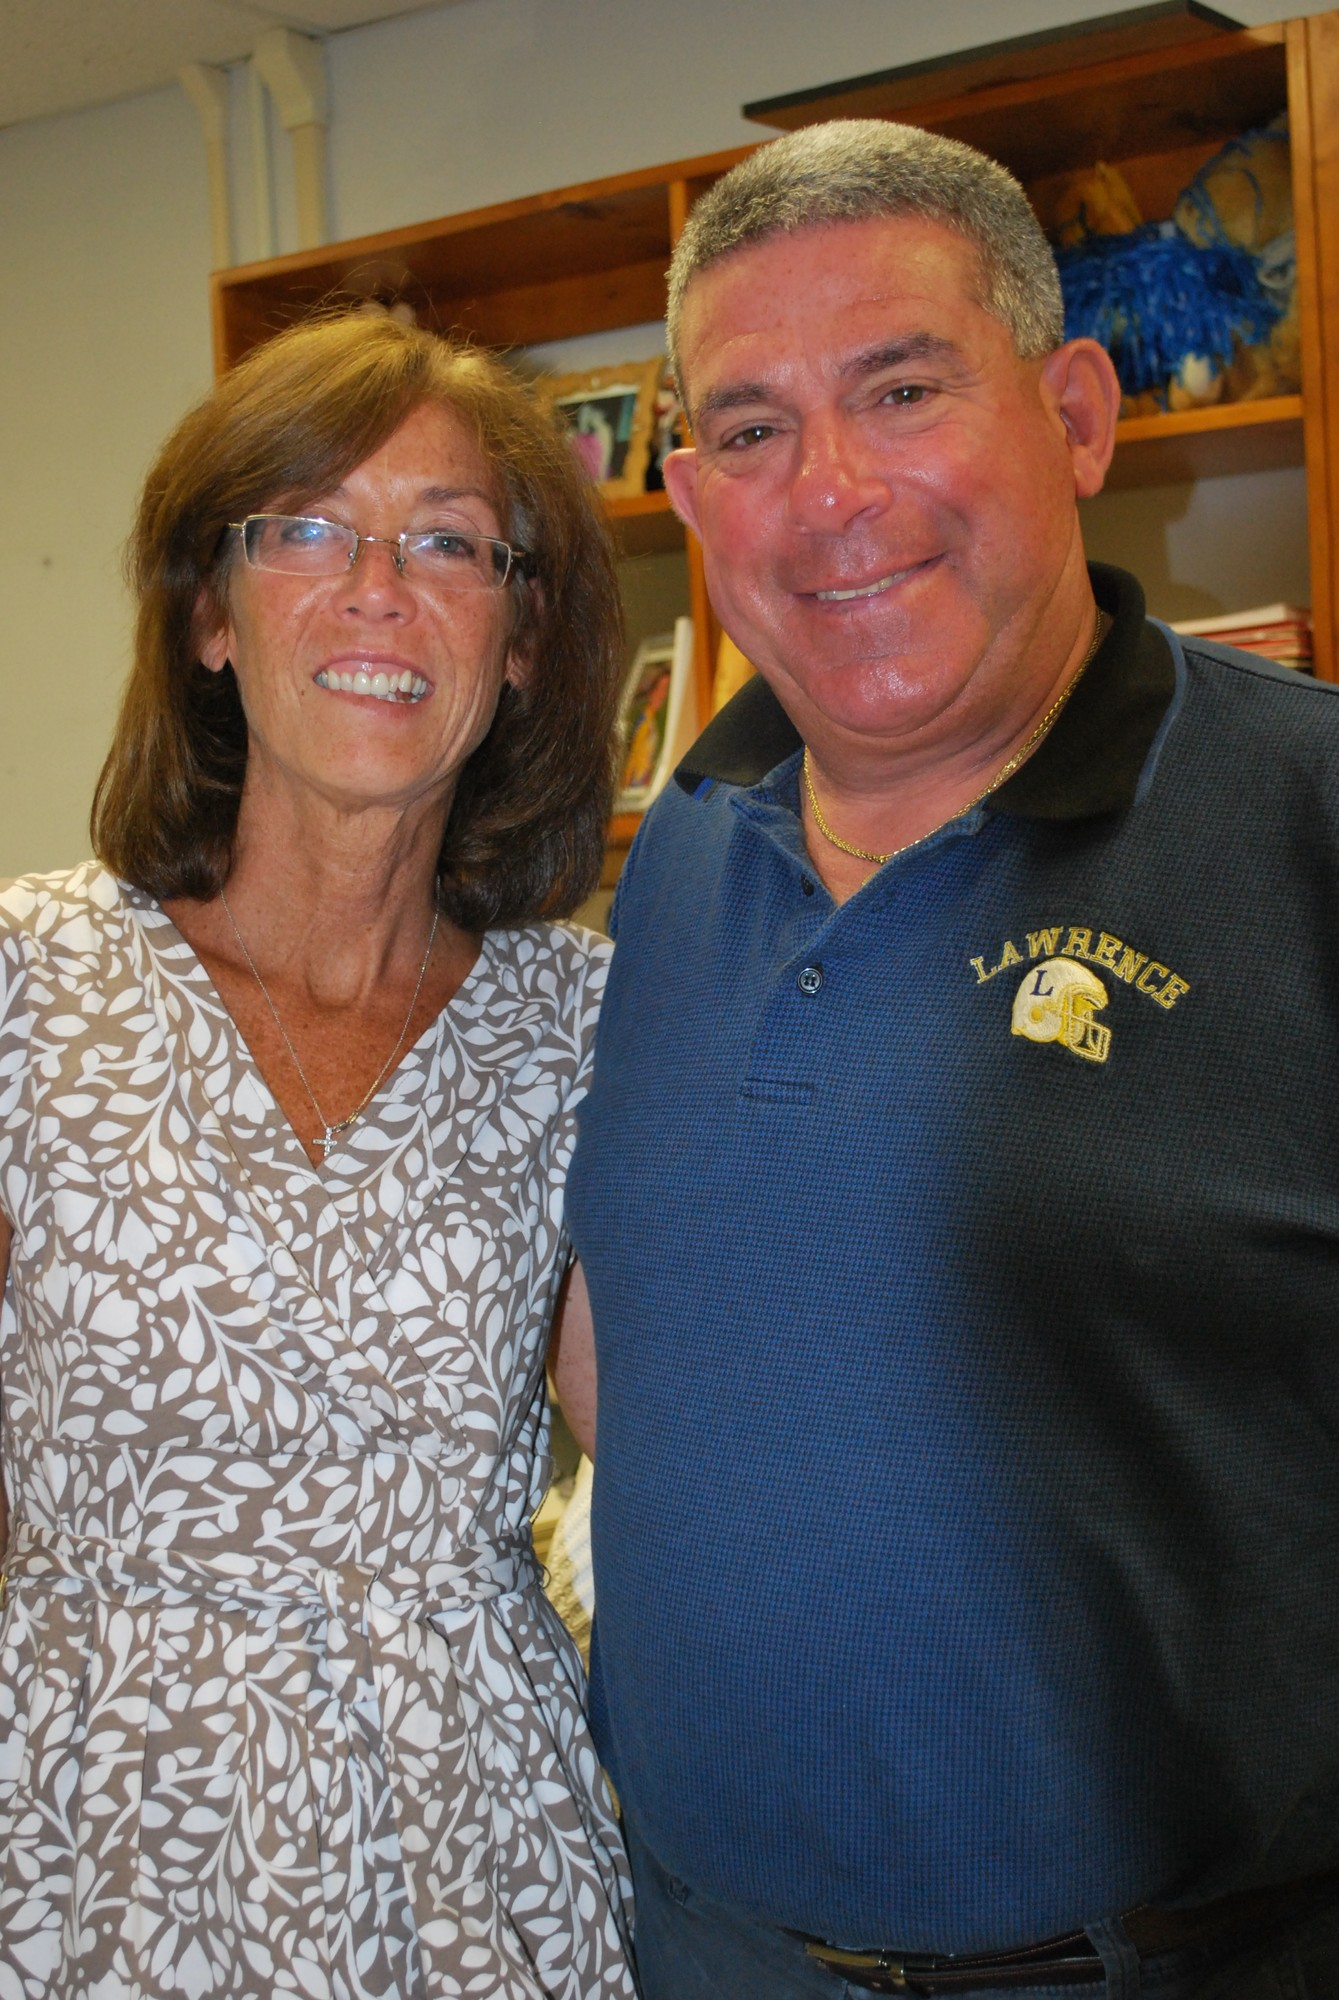 Pat Pizzarelli, who received help for the past 13 years from his secretary, Eileen Havey, headed the Lawrence School District's health, phys. ed. and athletics office.